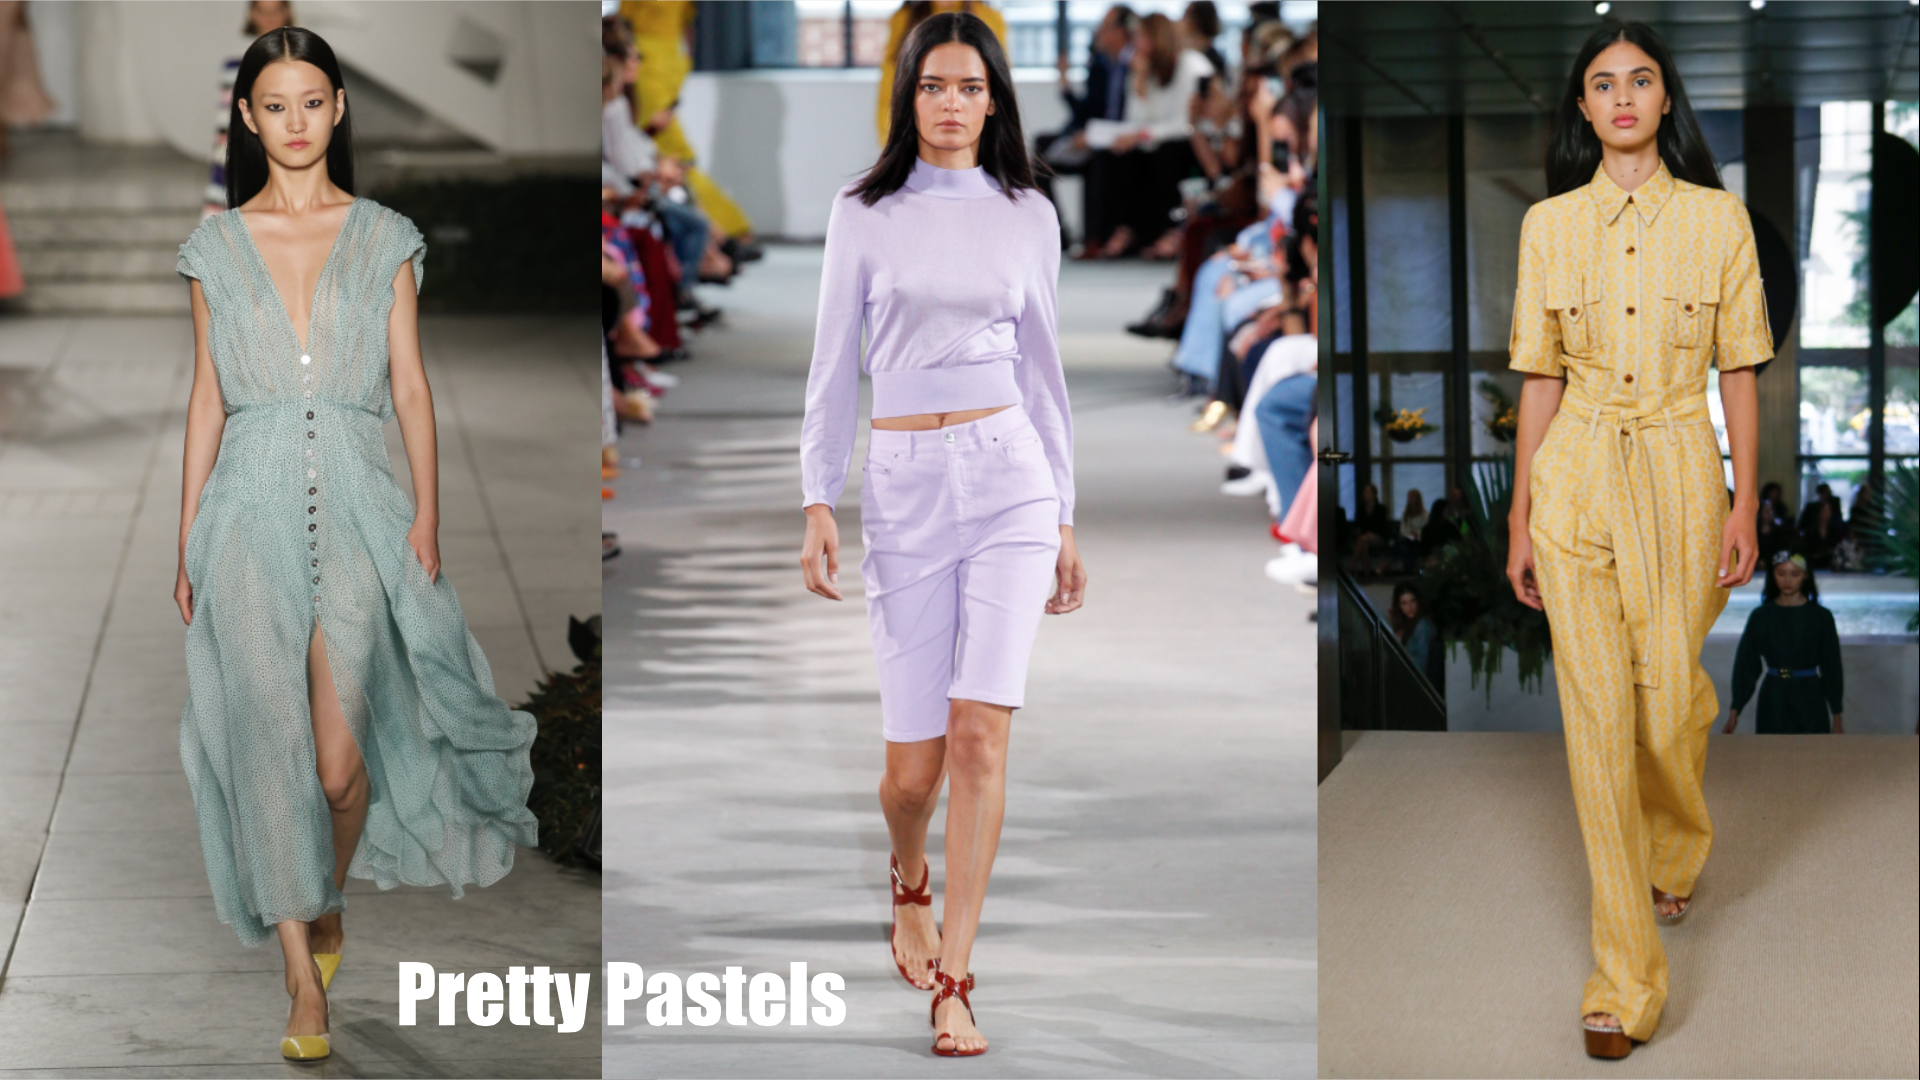 Seen at Carolina Herrera/ Tibi /Derek Lam Color trend alert: pastels are a go for spring. We saw a sprinkling of these light and lovely colors throughout different shows this week, especially at Victoria Beckham who's whole collection was practically all pastel. Don't get ready to say goodbye to millennial pink just yet.